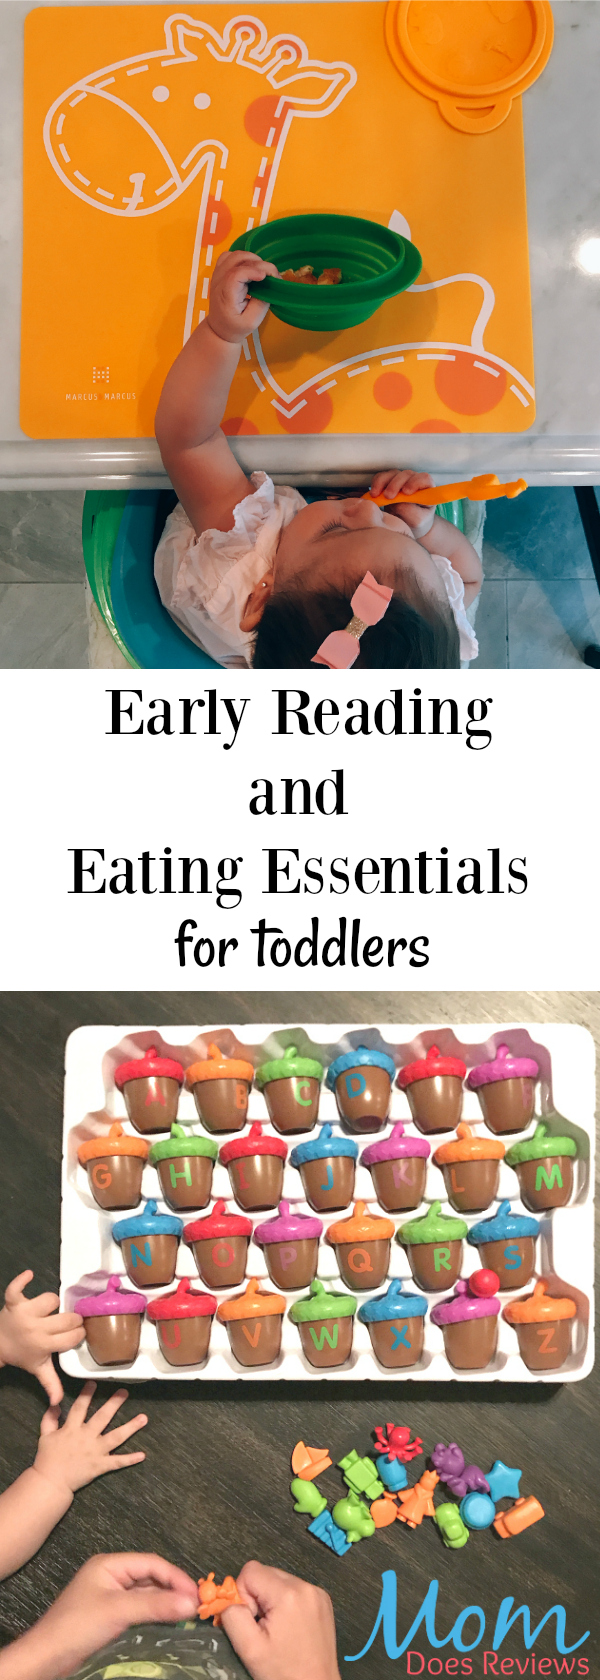 early reading and eating essentials for toddlers